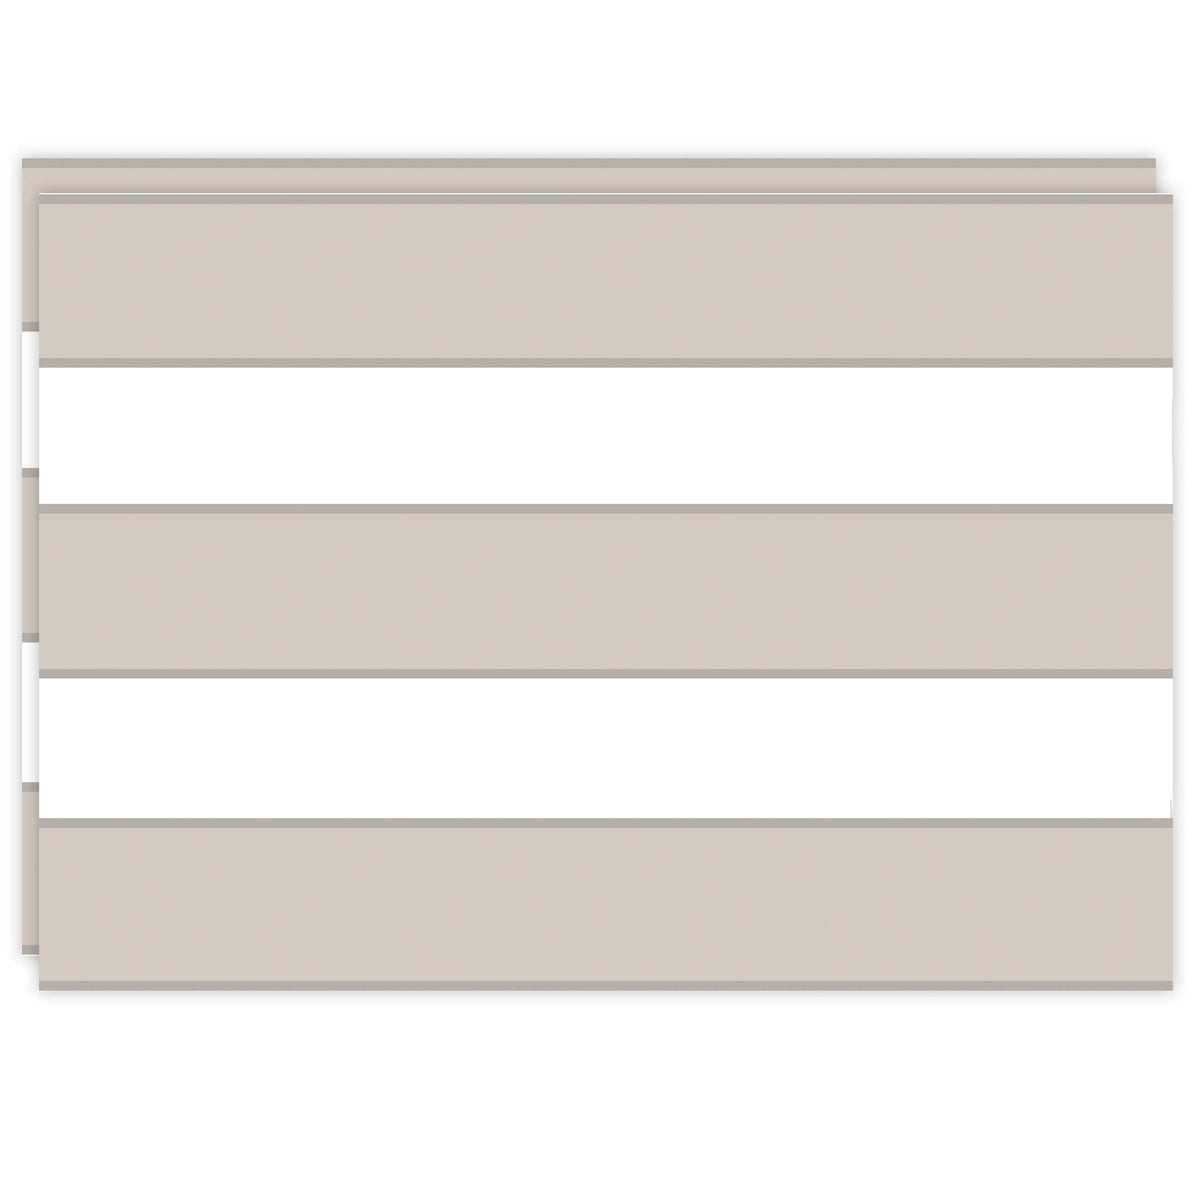 Rectangle Dailies® | Neutral Cabana Stripe (2-Pack) - TingeDaily